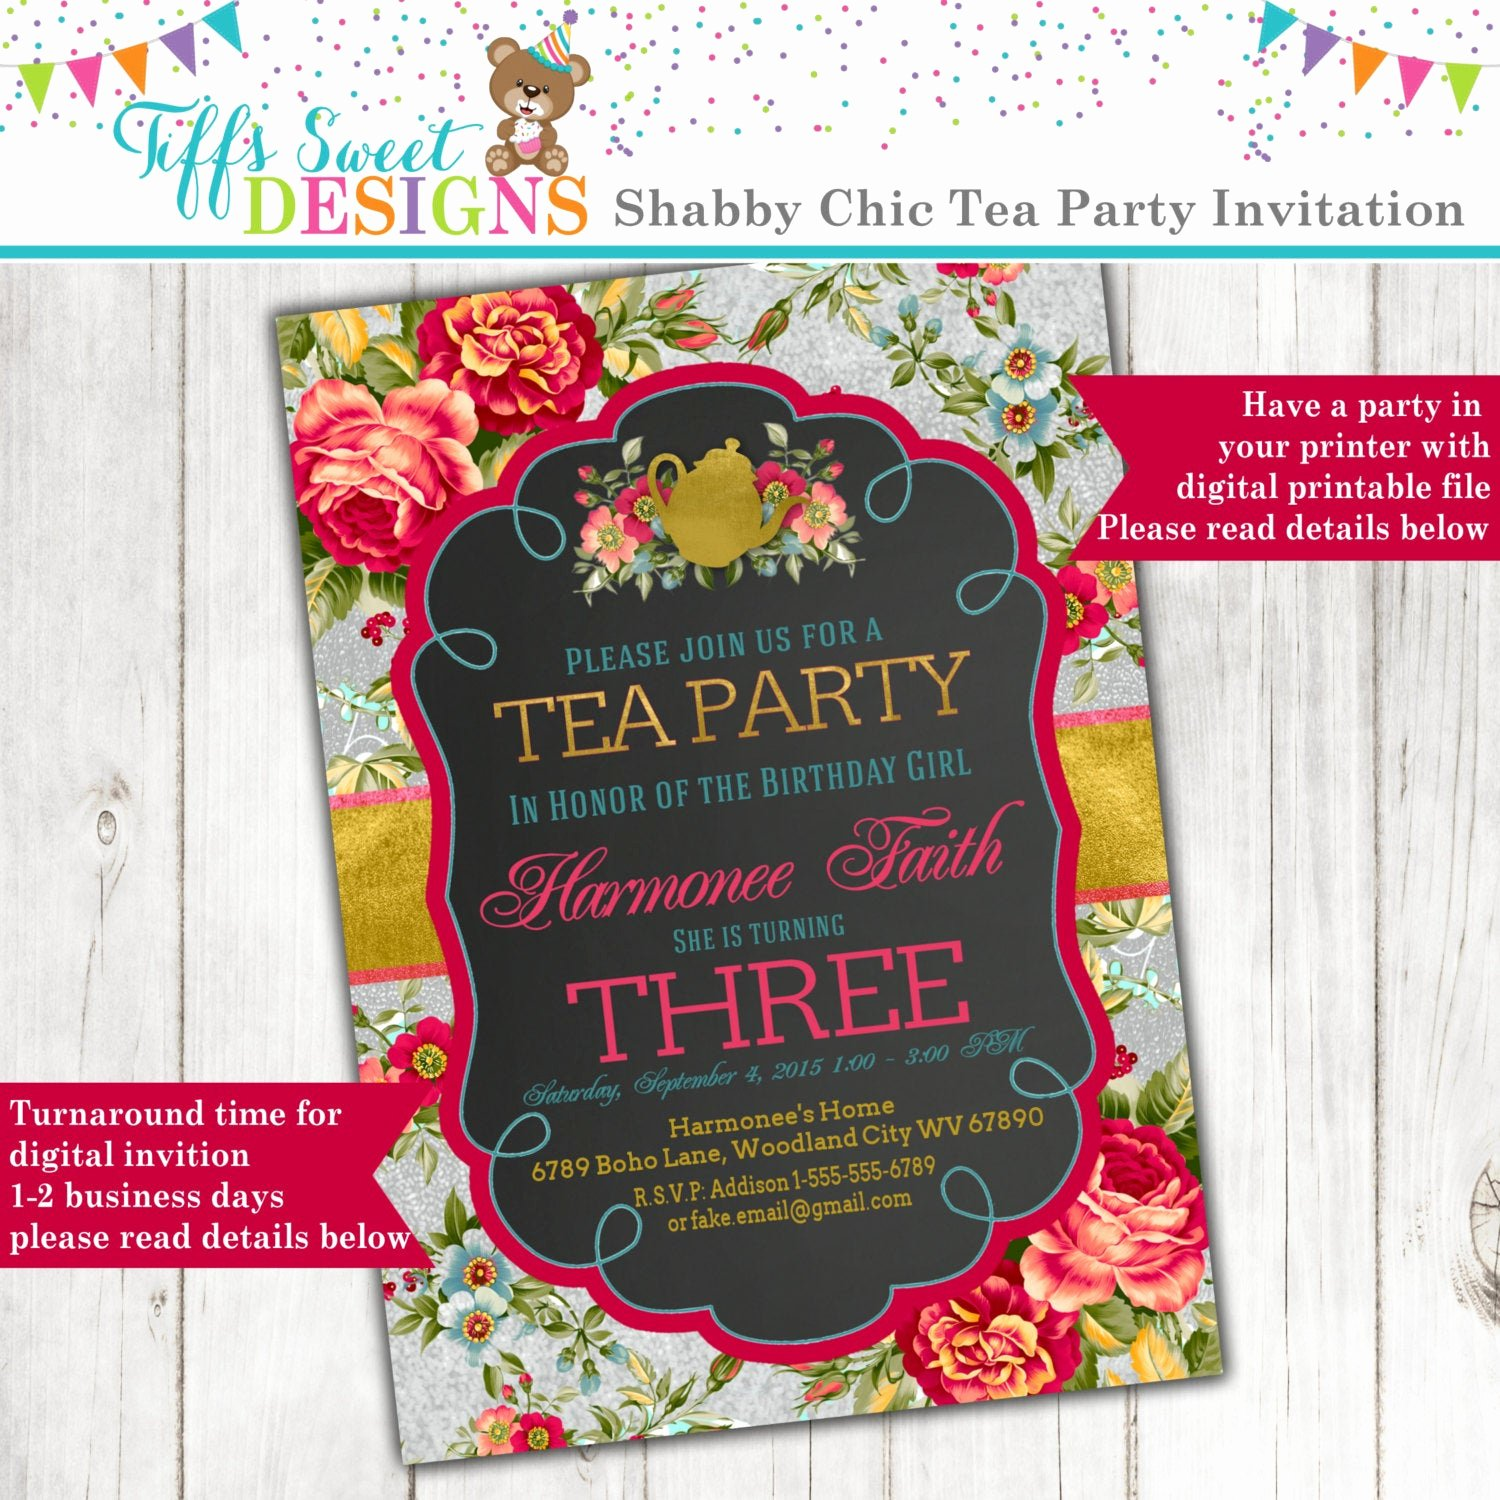 Shabby Chic Birthday Invitations Lovely Shabby Chic Tea Party Invitation with Roses and A Silver